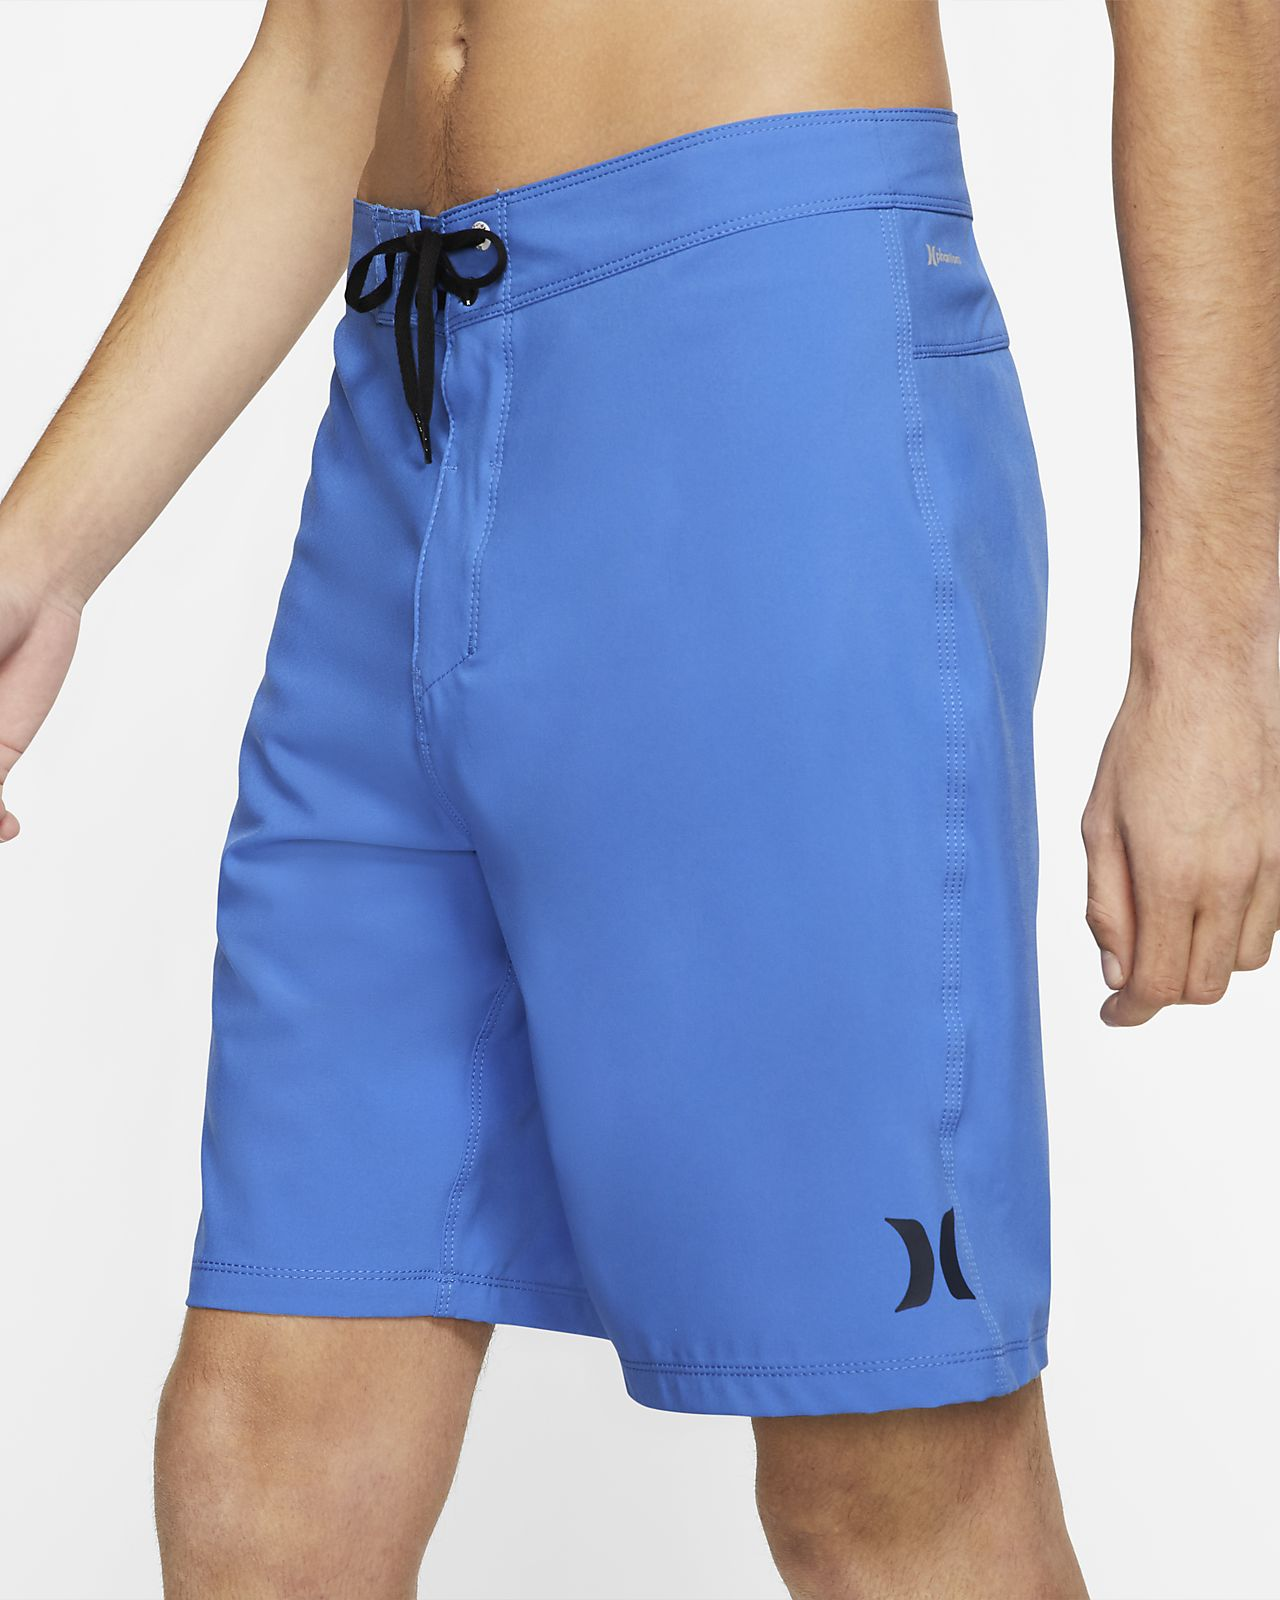 "Hurley Phantom One and Only Men's 20"" Board Shorts"